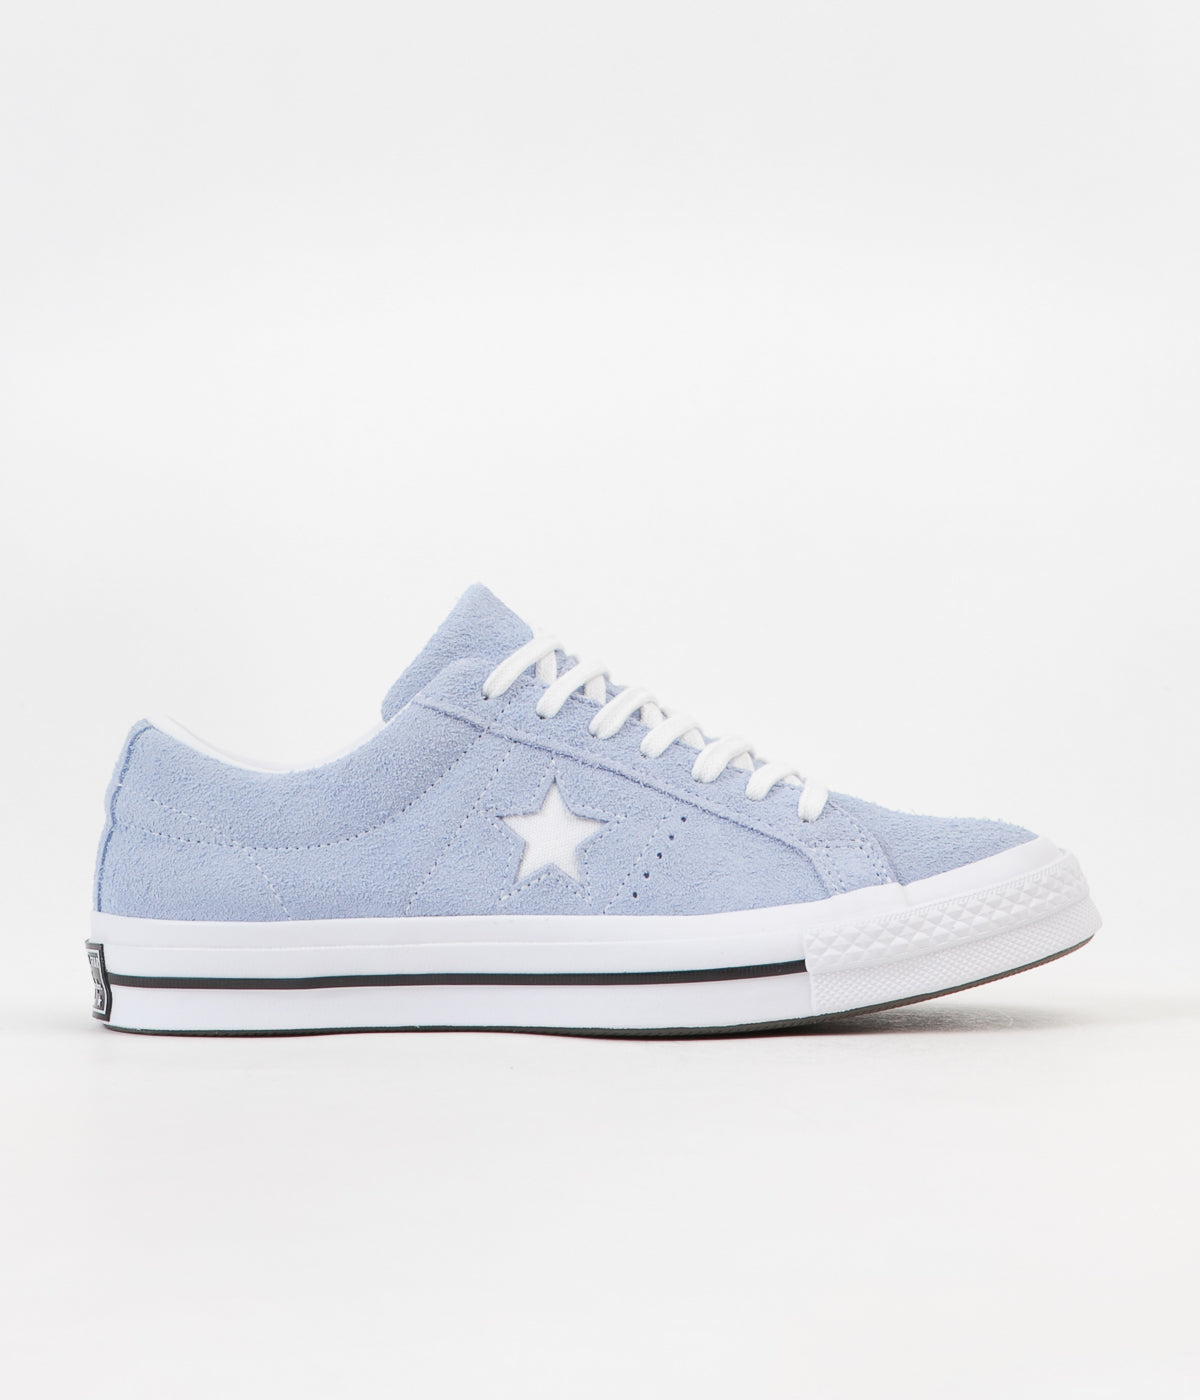 05970faa1c01 coupon for converse one star ox shoes blue chill white black 63a39 8f850